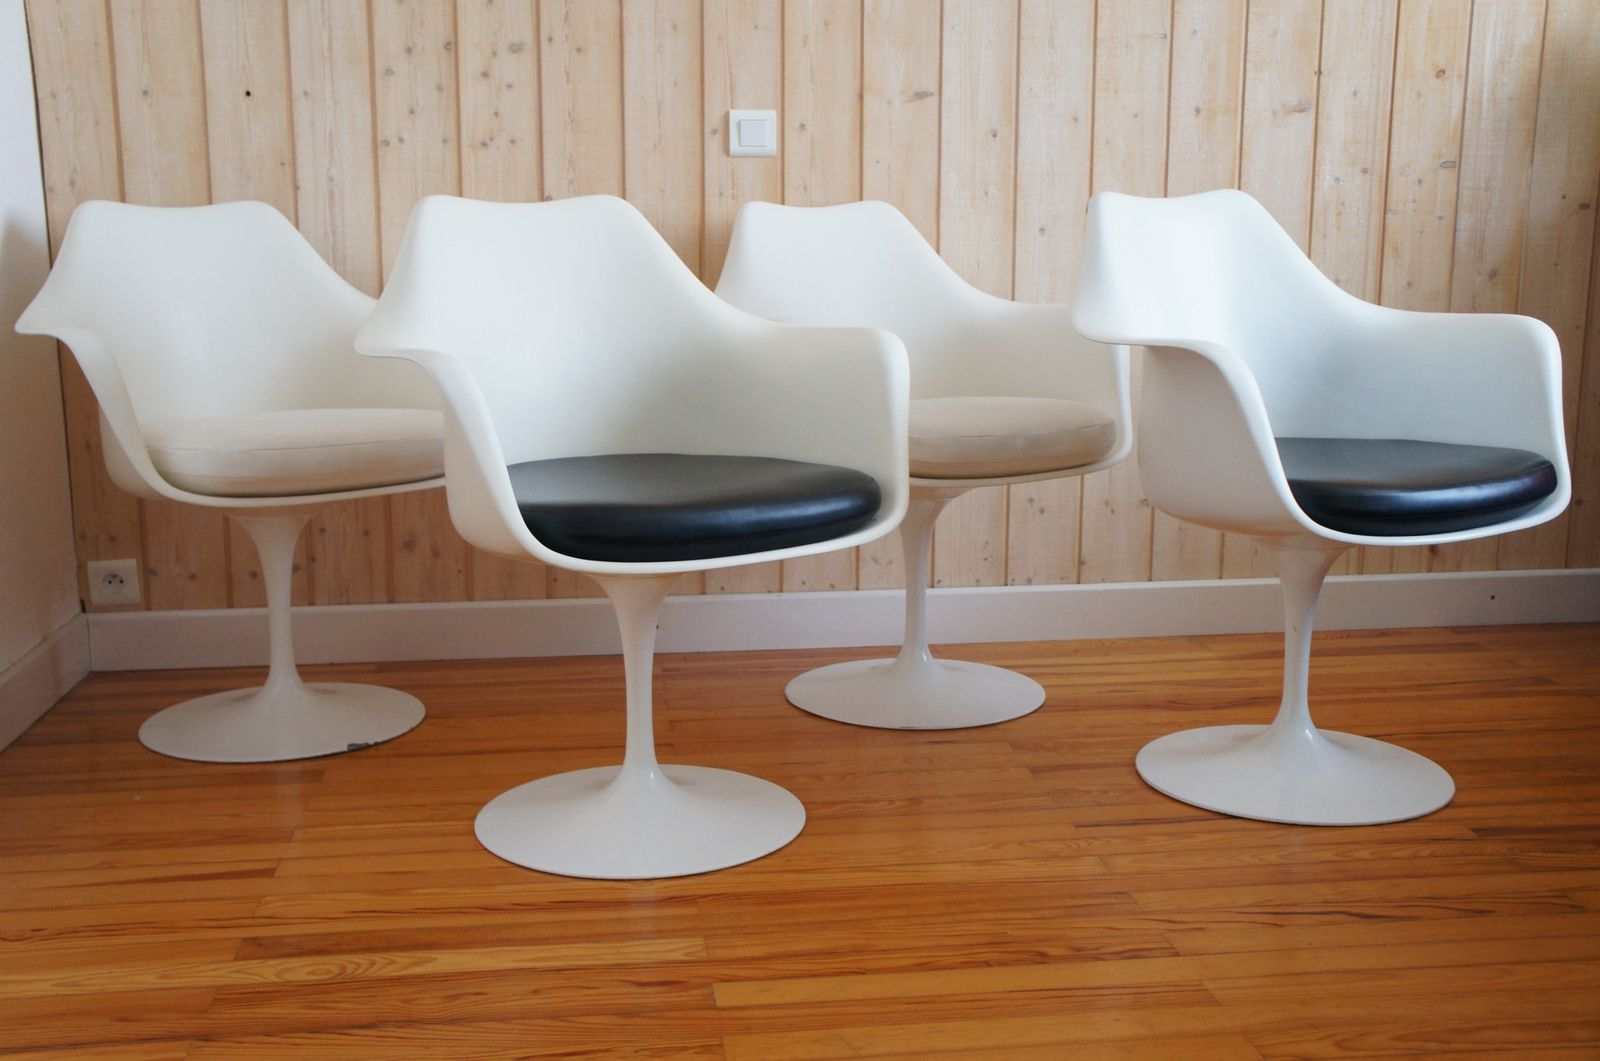 Fauteuils tulipes eero saarinen knoll international design for Architecture annees 60